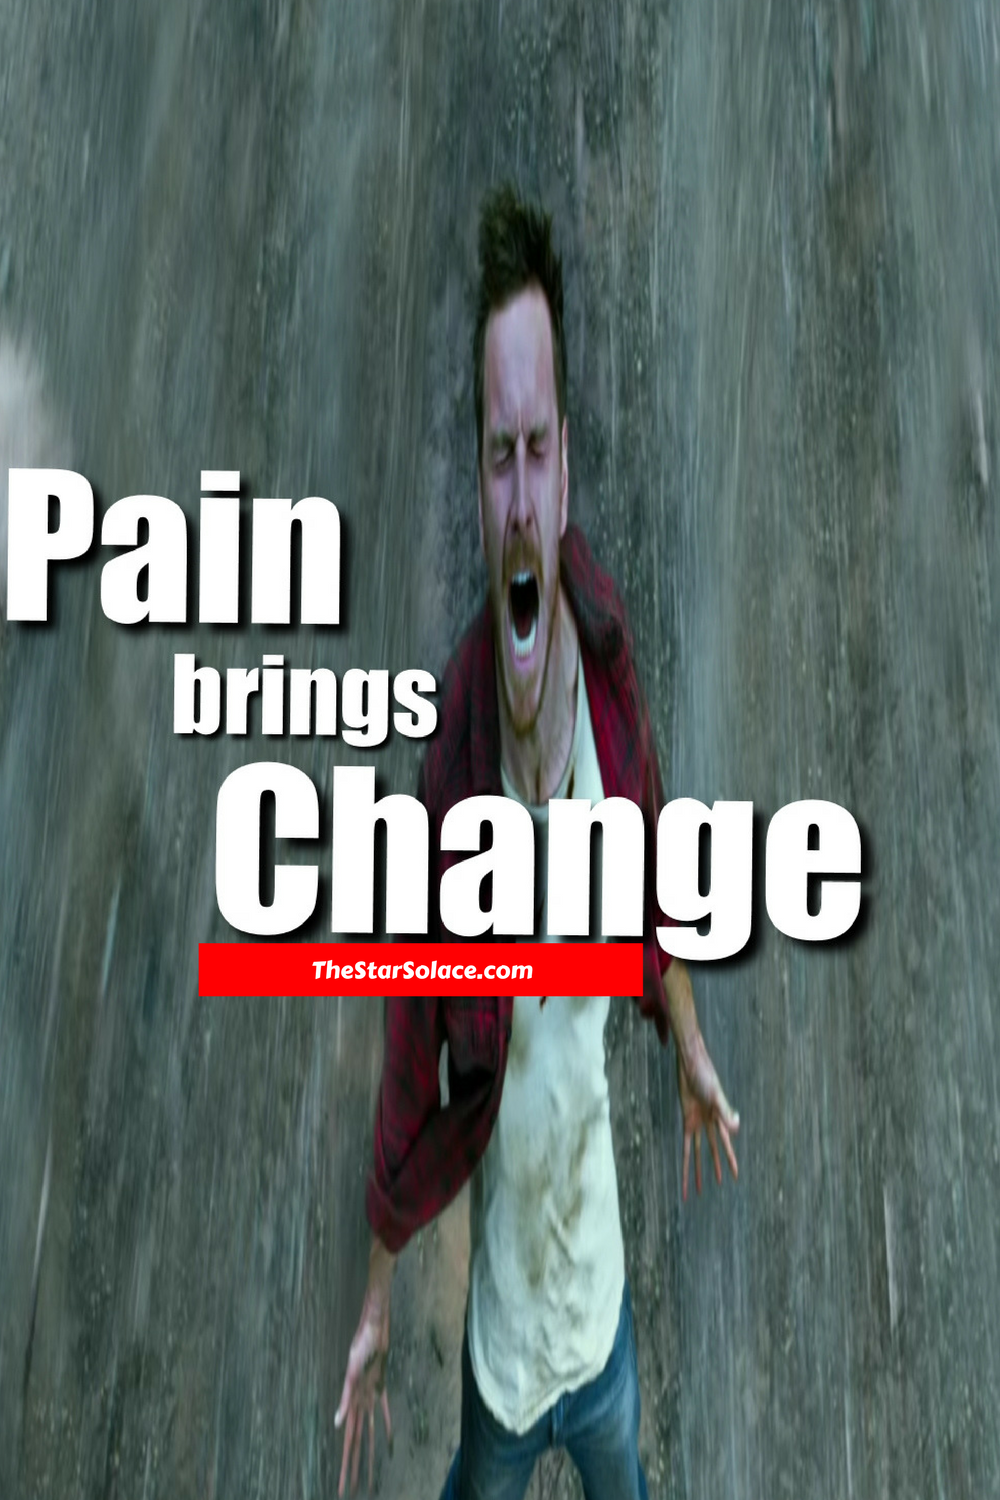 Inspirational Quotes For Men Xmen Apocalypse Michael Fassbender Magneto Pain Brings Change